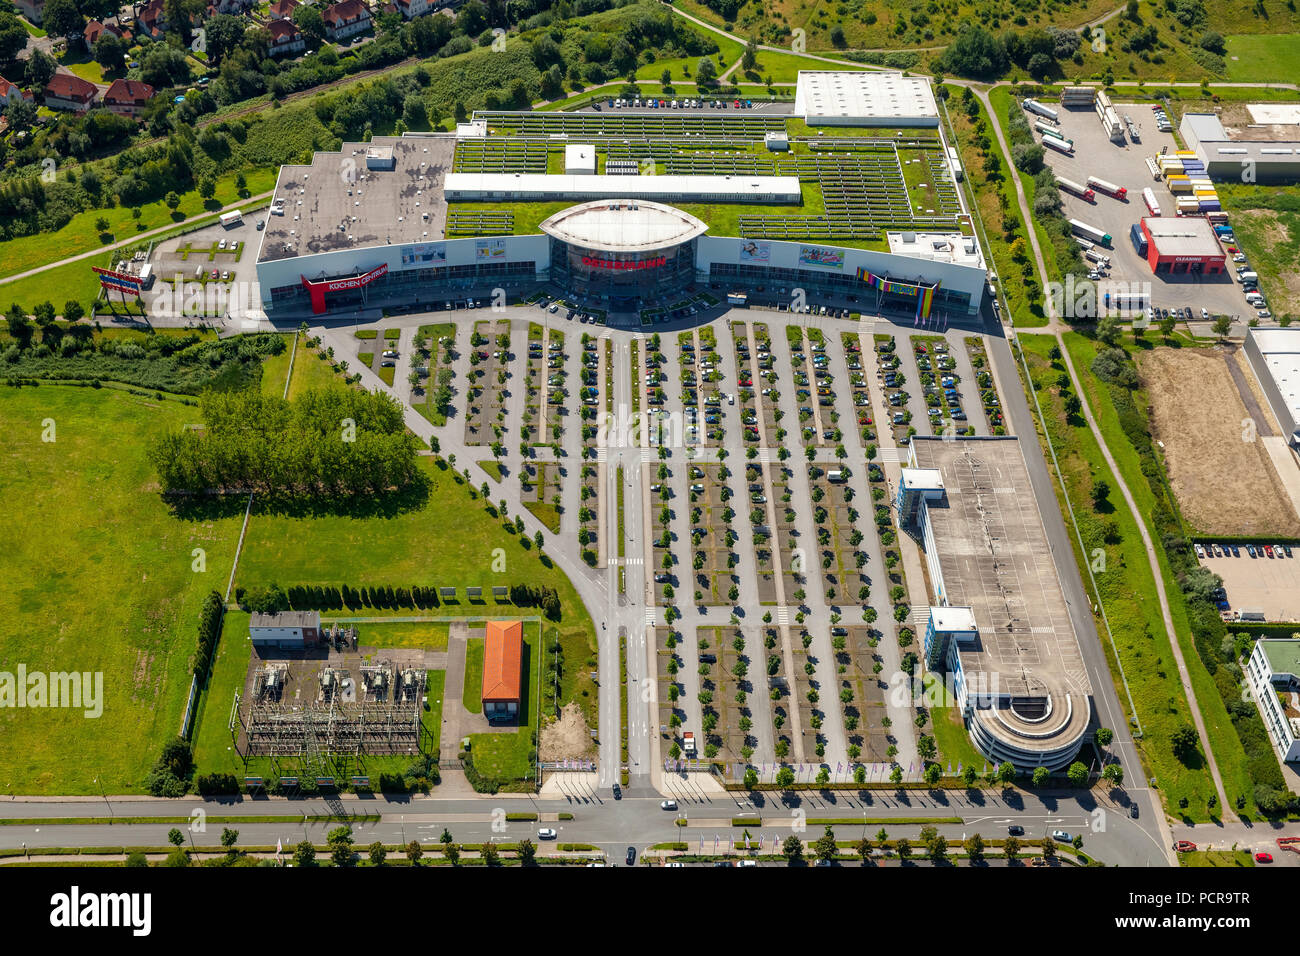 Furnishing house Ostermann Bottrop at the B224, furniture discounter, furniture store, car park, Bottrop, Ruhr area, North Rhine-Westphalia, Germany - Stock Image